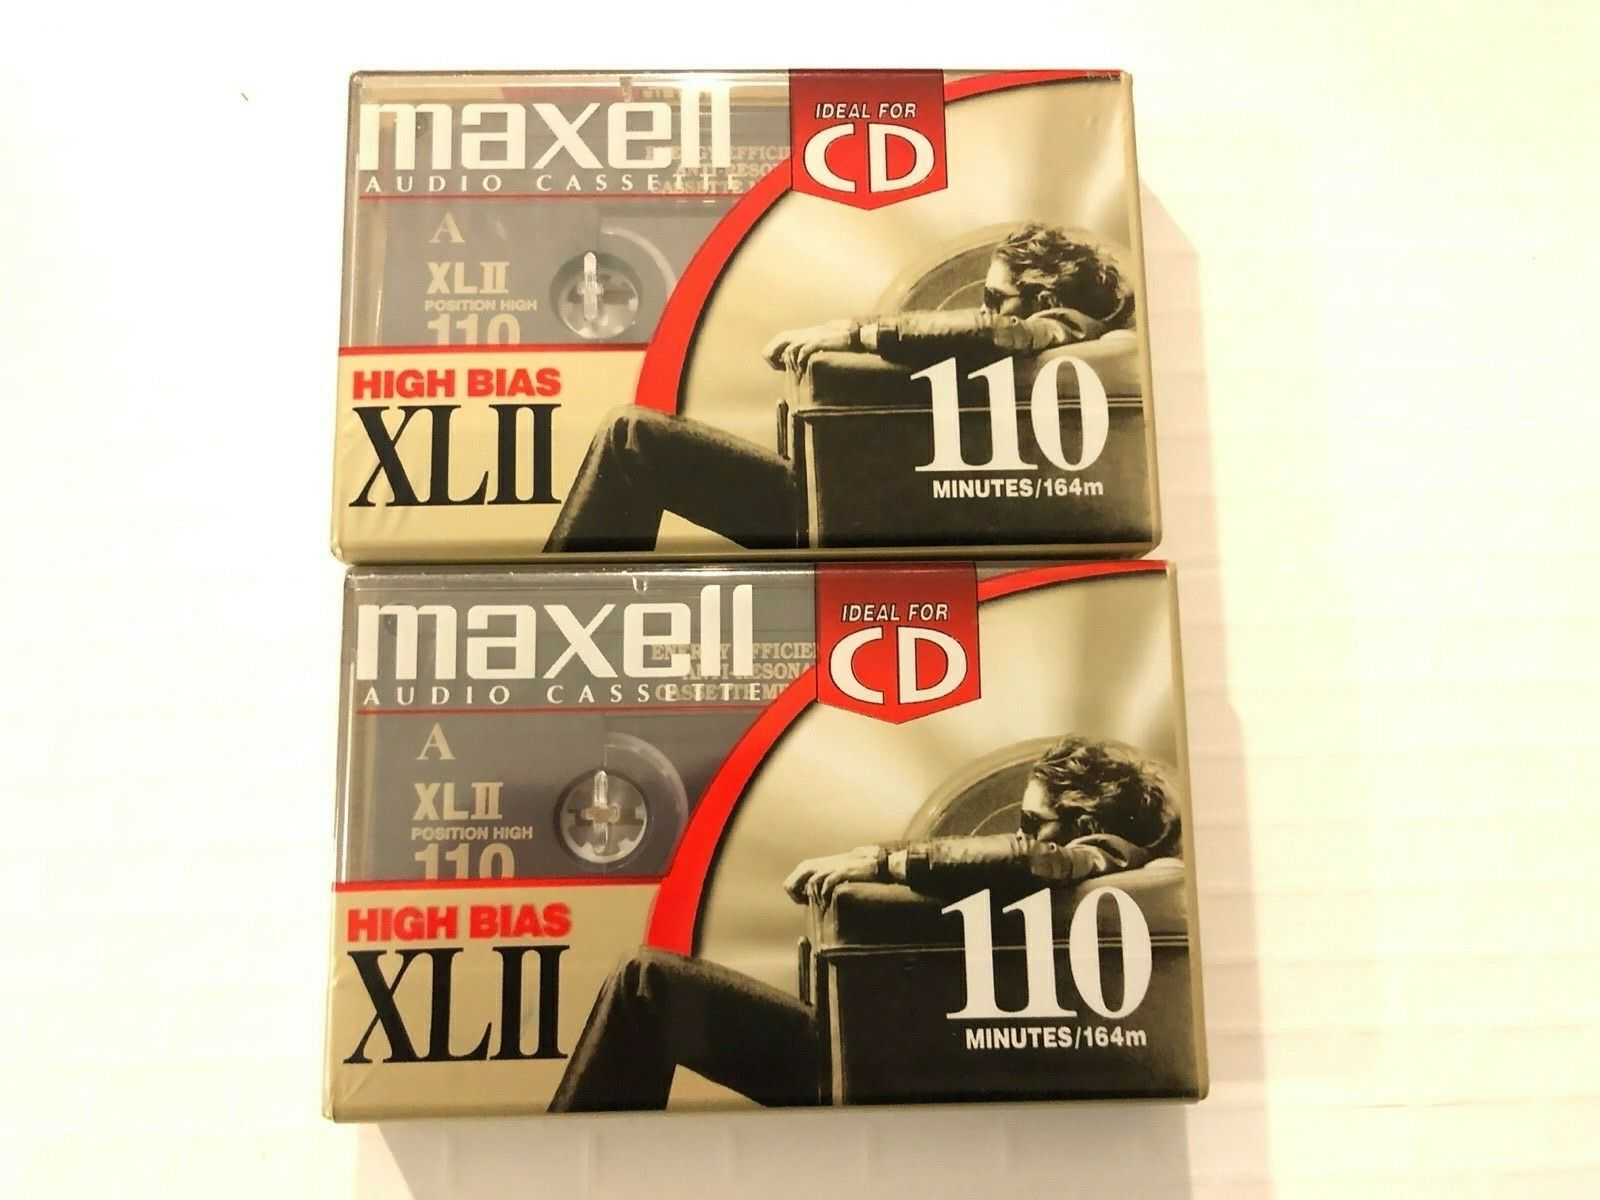 Two MAXELL Audio Cassette CD High Bias XLII 110 Minutes NEW